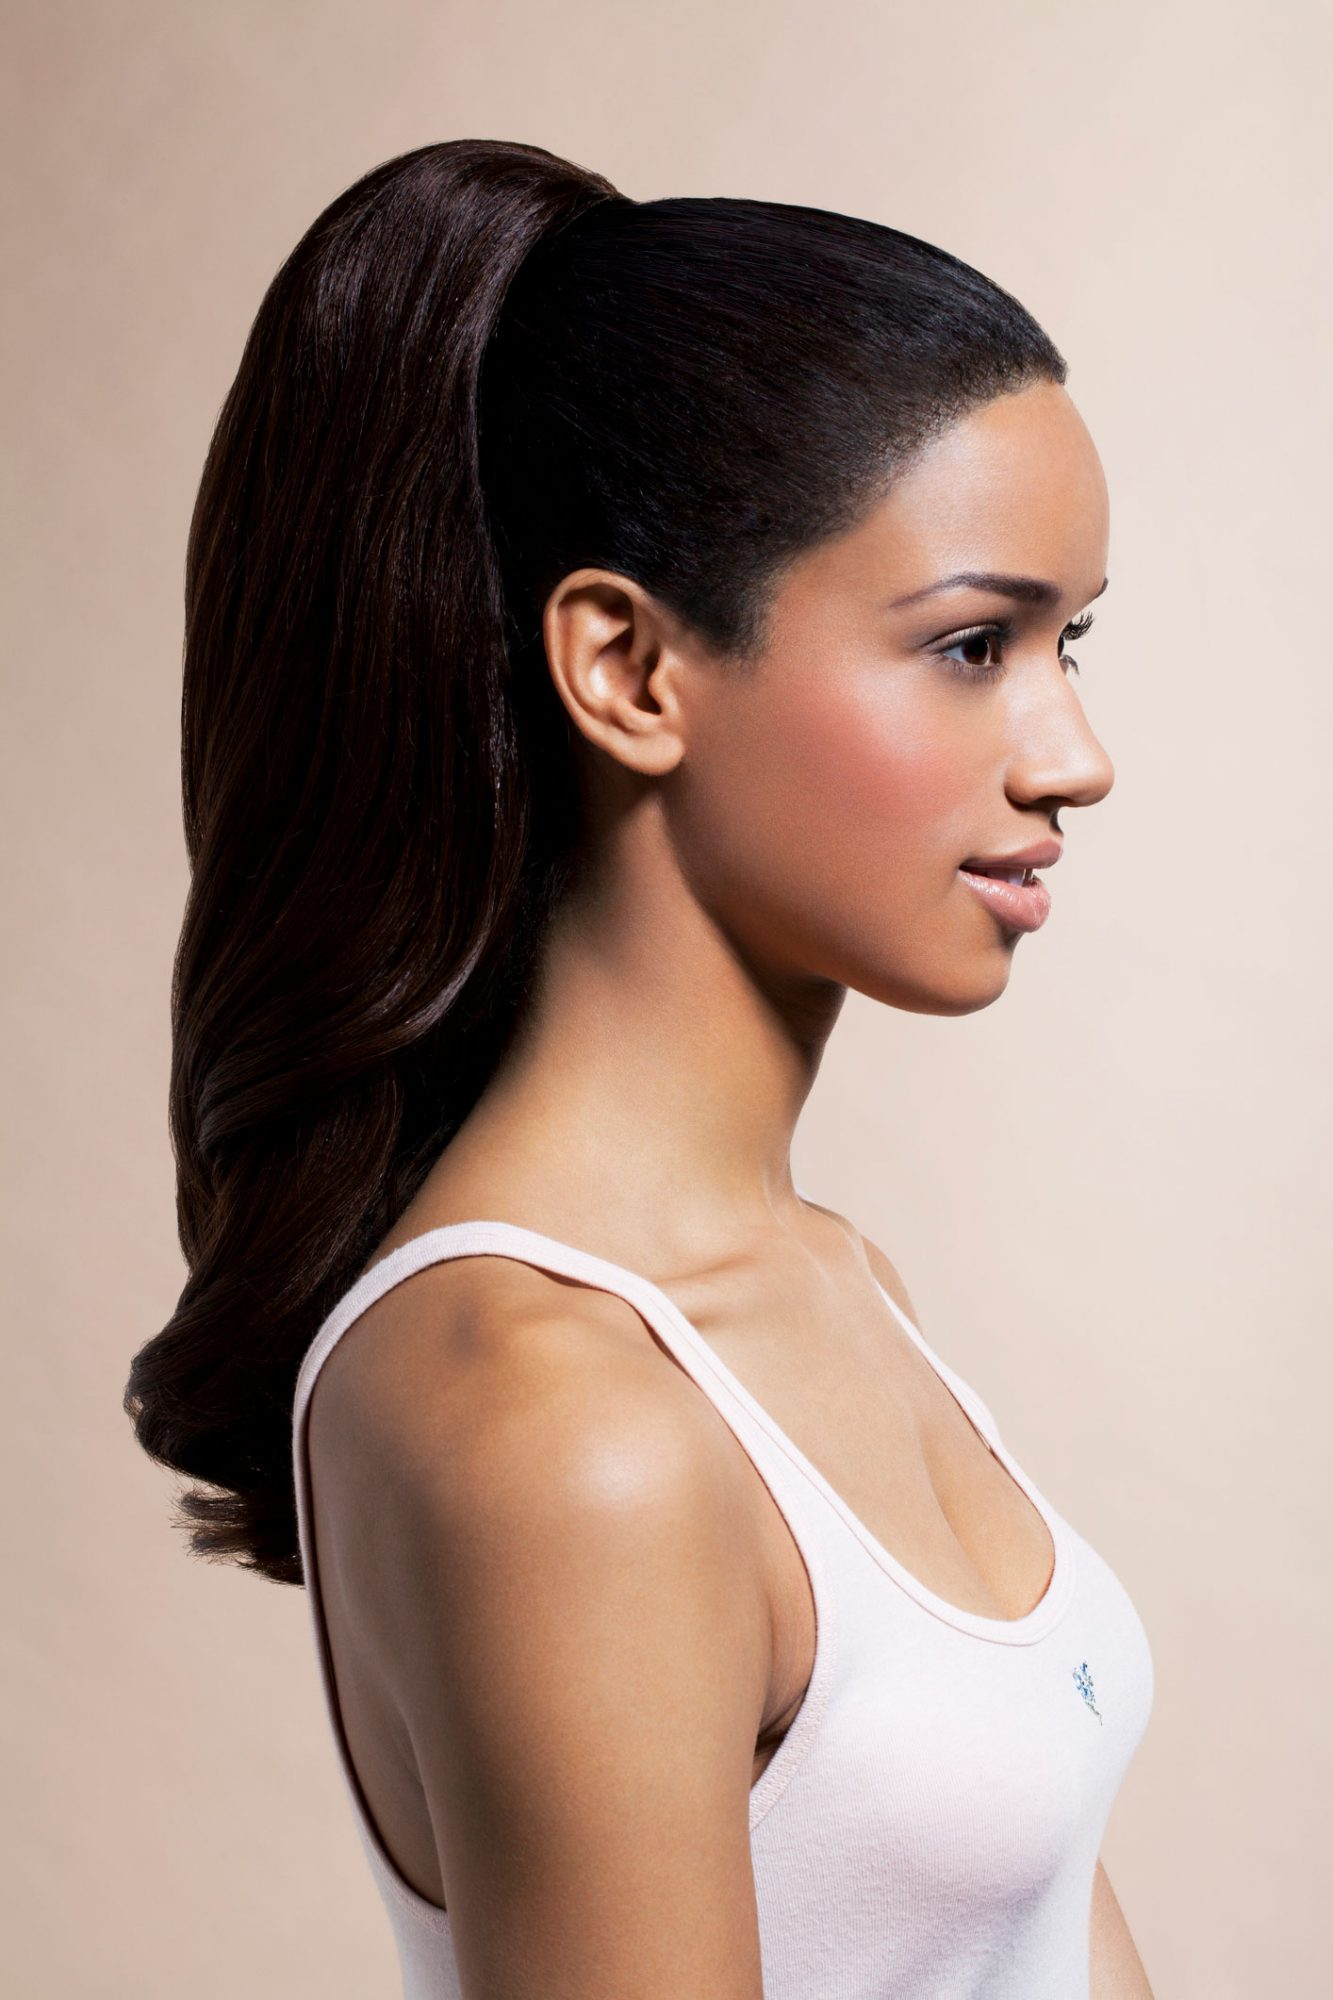 Cute hairstyles for school - slicked back high ponytail